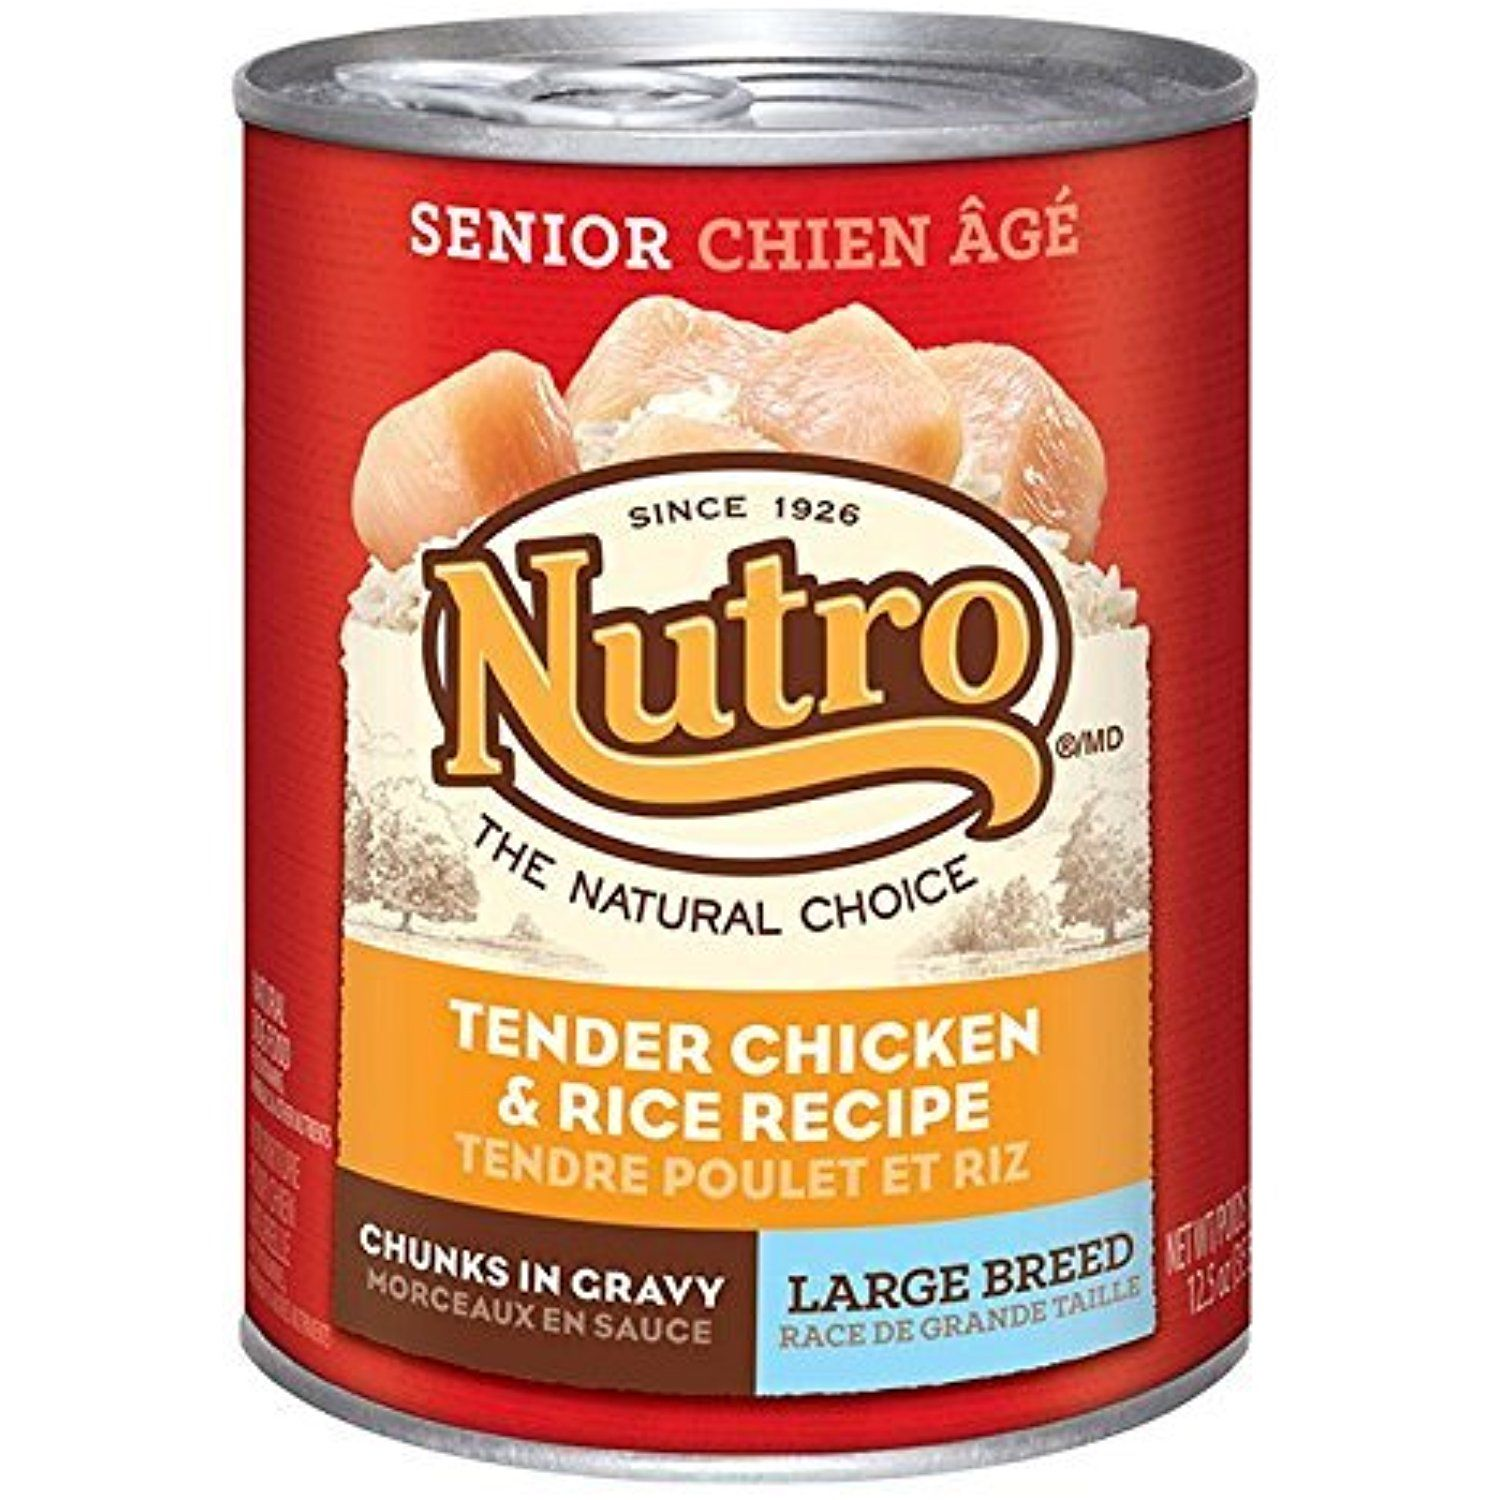 Nutro large breed senior chicken and rice canned dog food